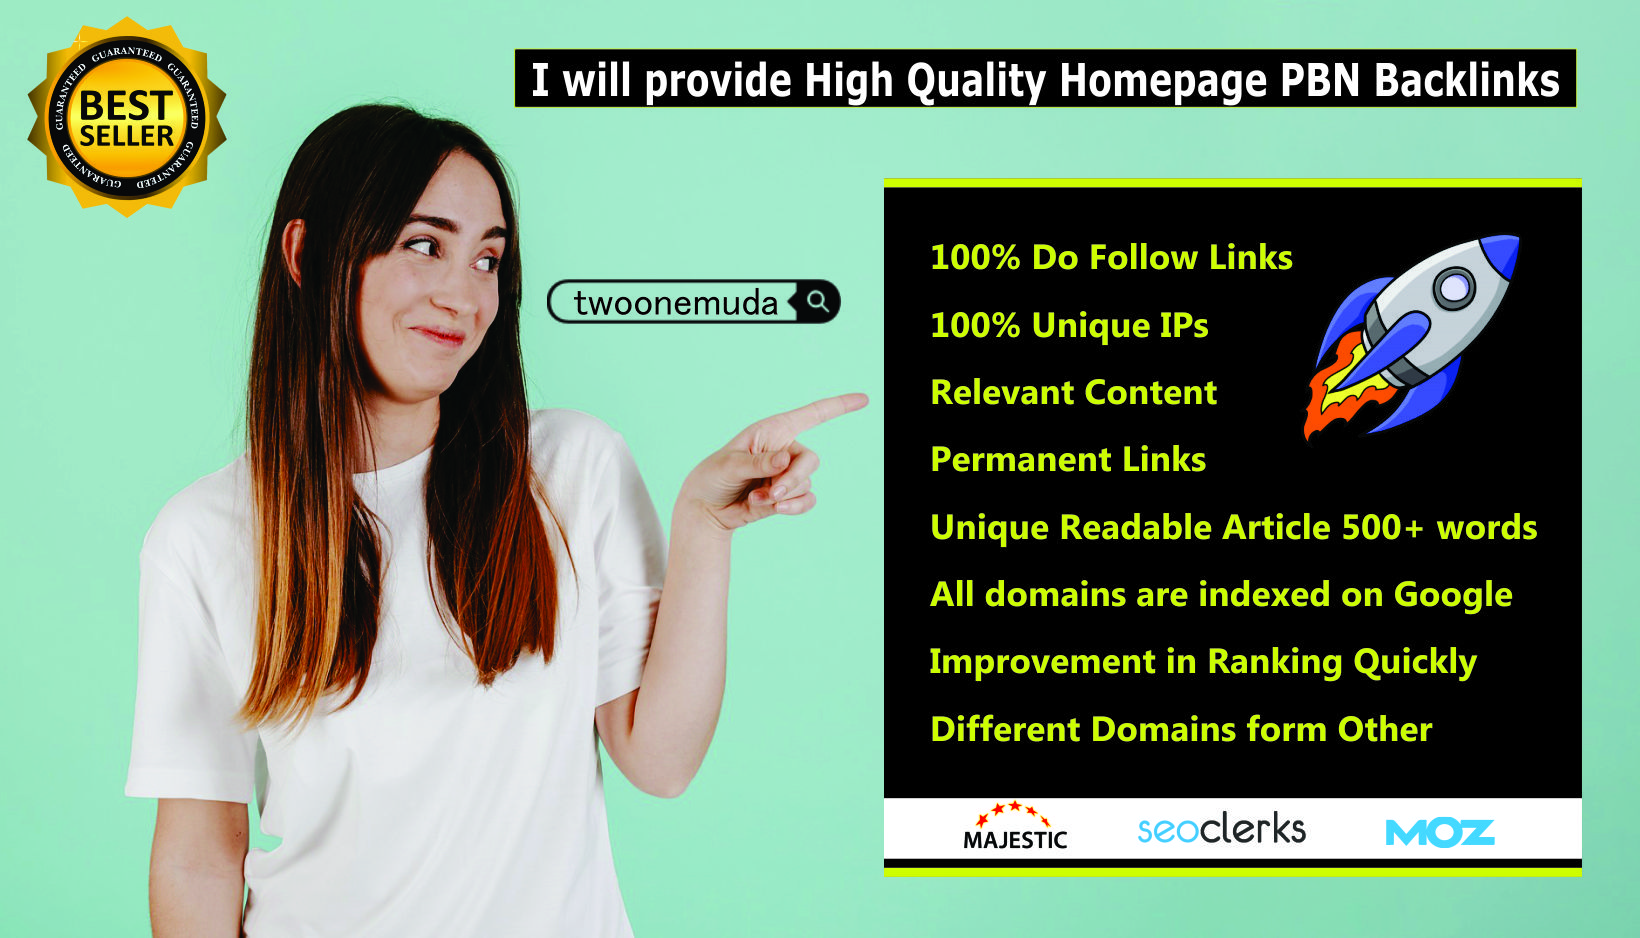 75 PBN Backlinks Rank Booster SEO Package - High Quality Effective